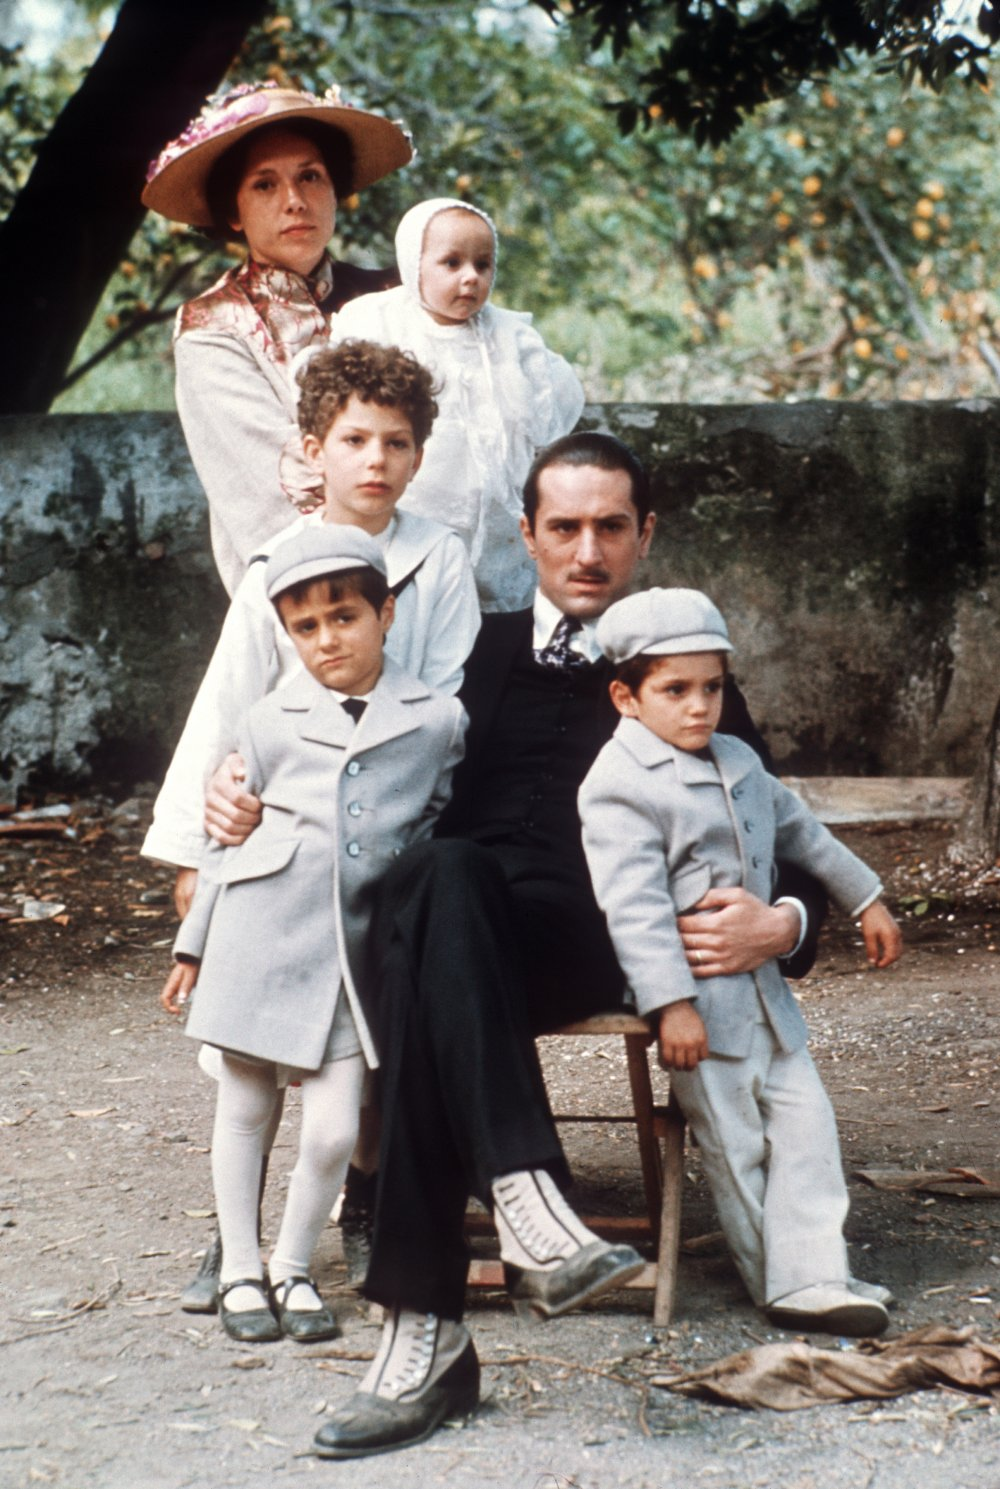 In The Godfather Part II (1974), Willis's work brought a distinct character to scenes shot in New York, Sicily and Cuba, helping the audience to keep track of an epic narrative that takes in shifting time periods and settings